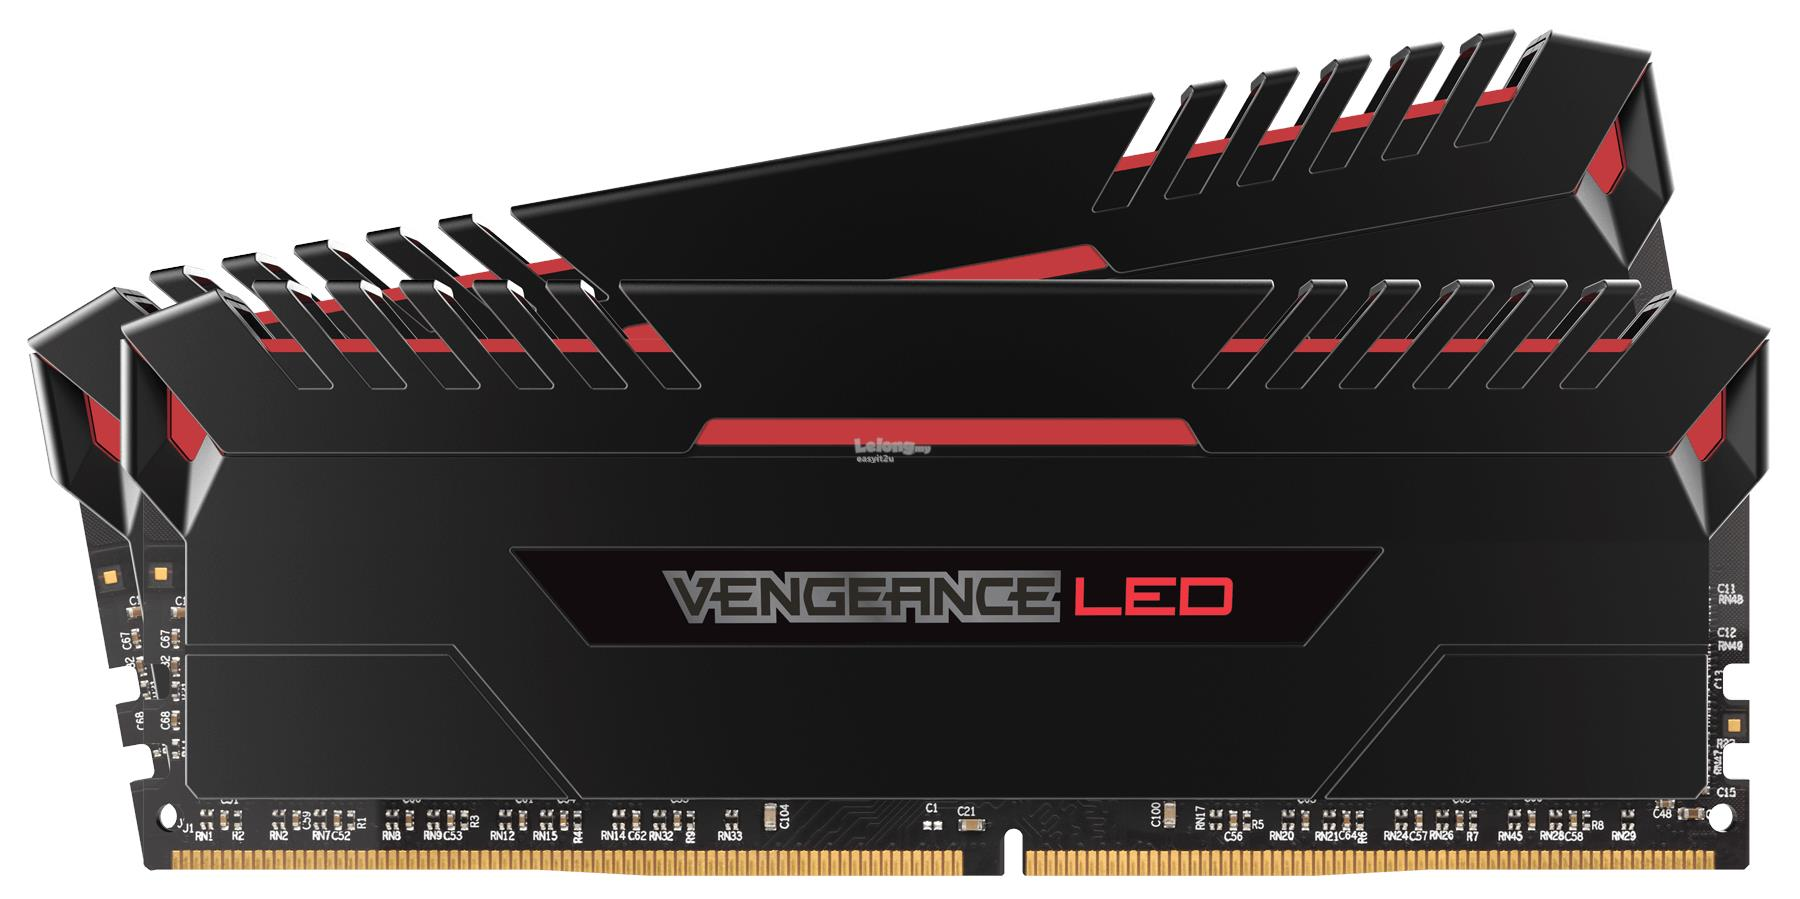 CORSAIR VENGEANCE LED 32GB (2X16G) DDR4 3200MHZ (CMU32GX4M2C3200C16R)